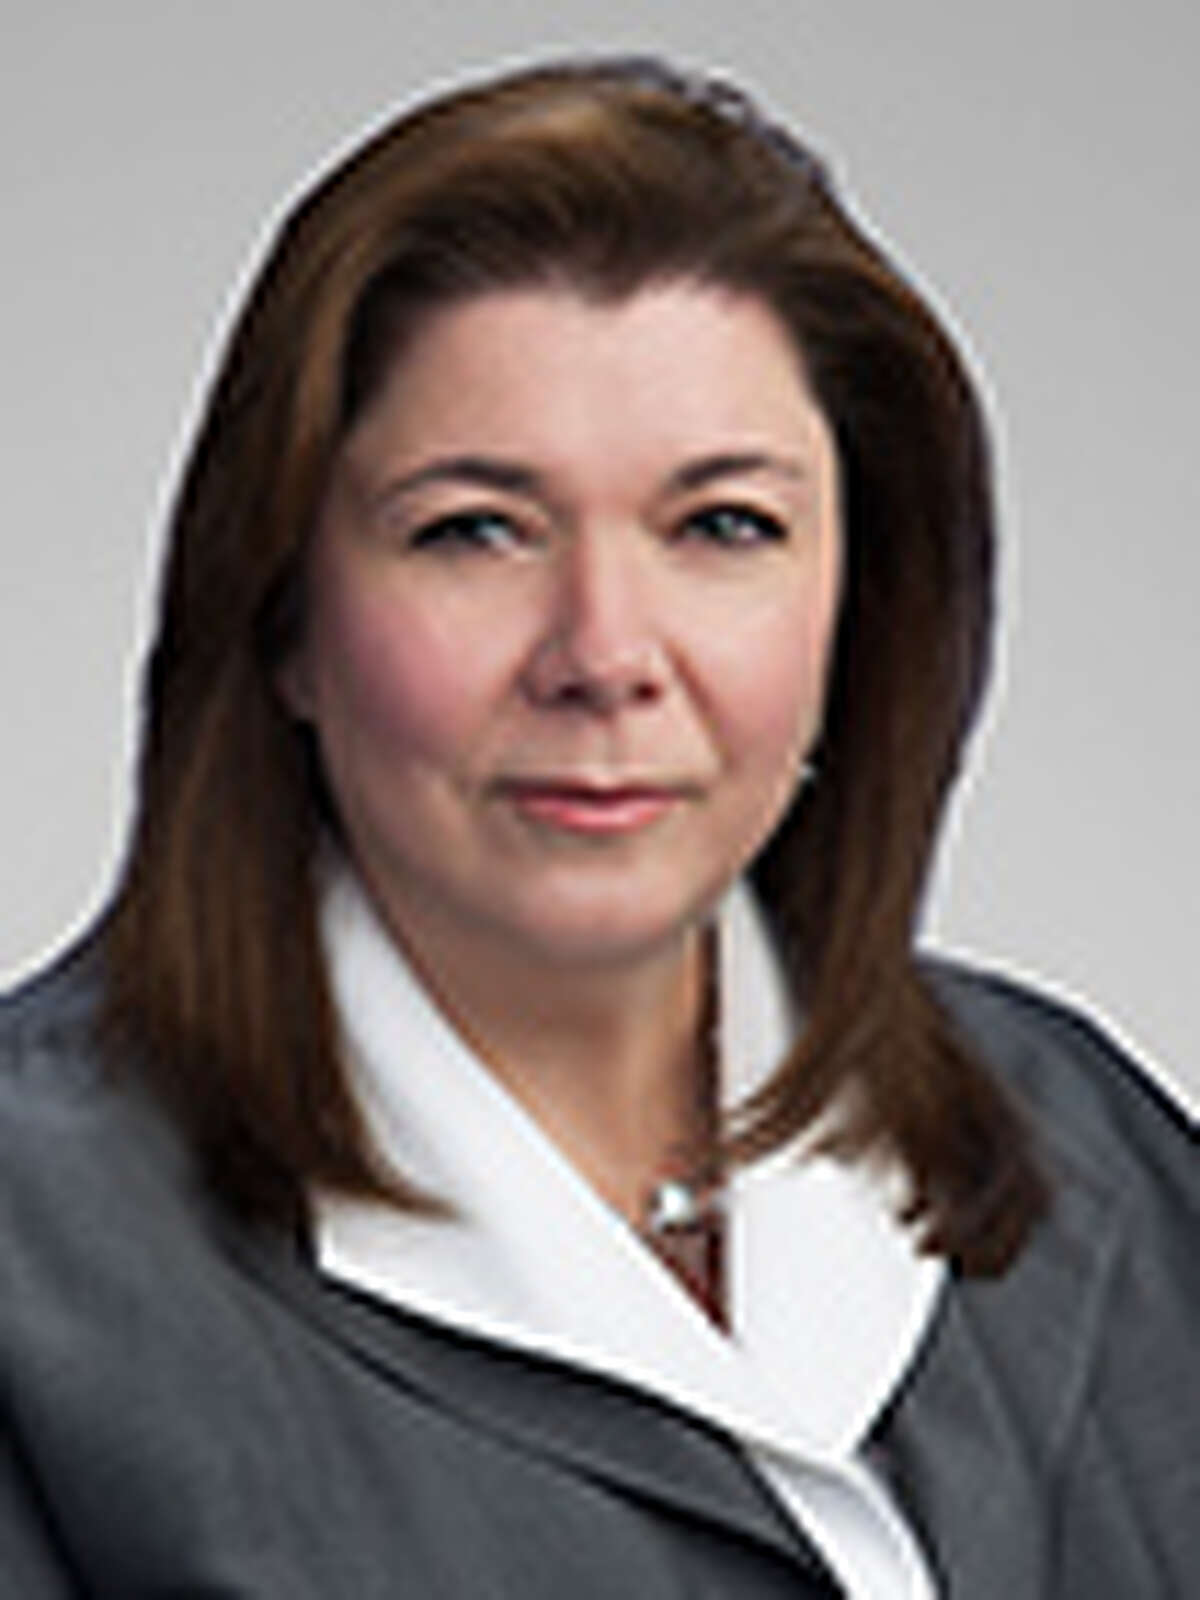 Marilyn Lucas has joined PM Realty Group senior vice president and director of asset management.